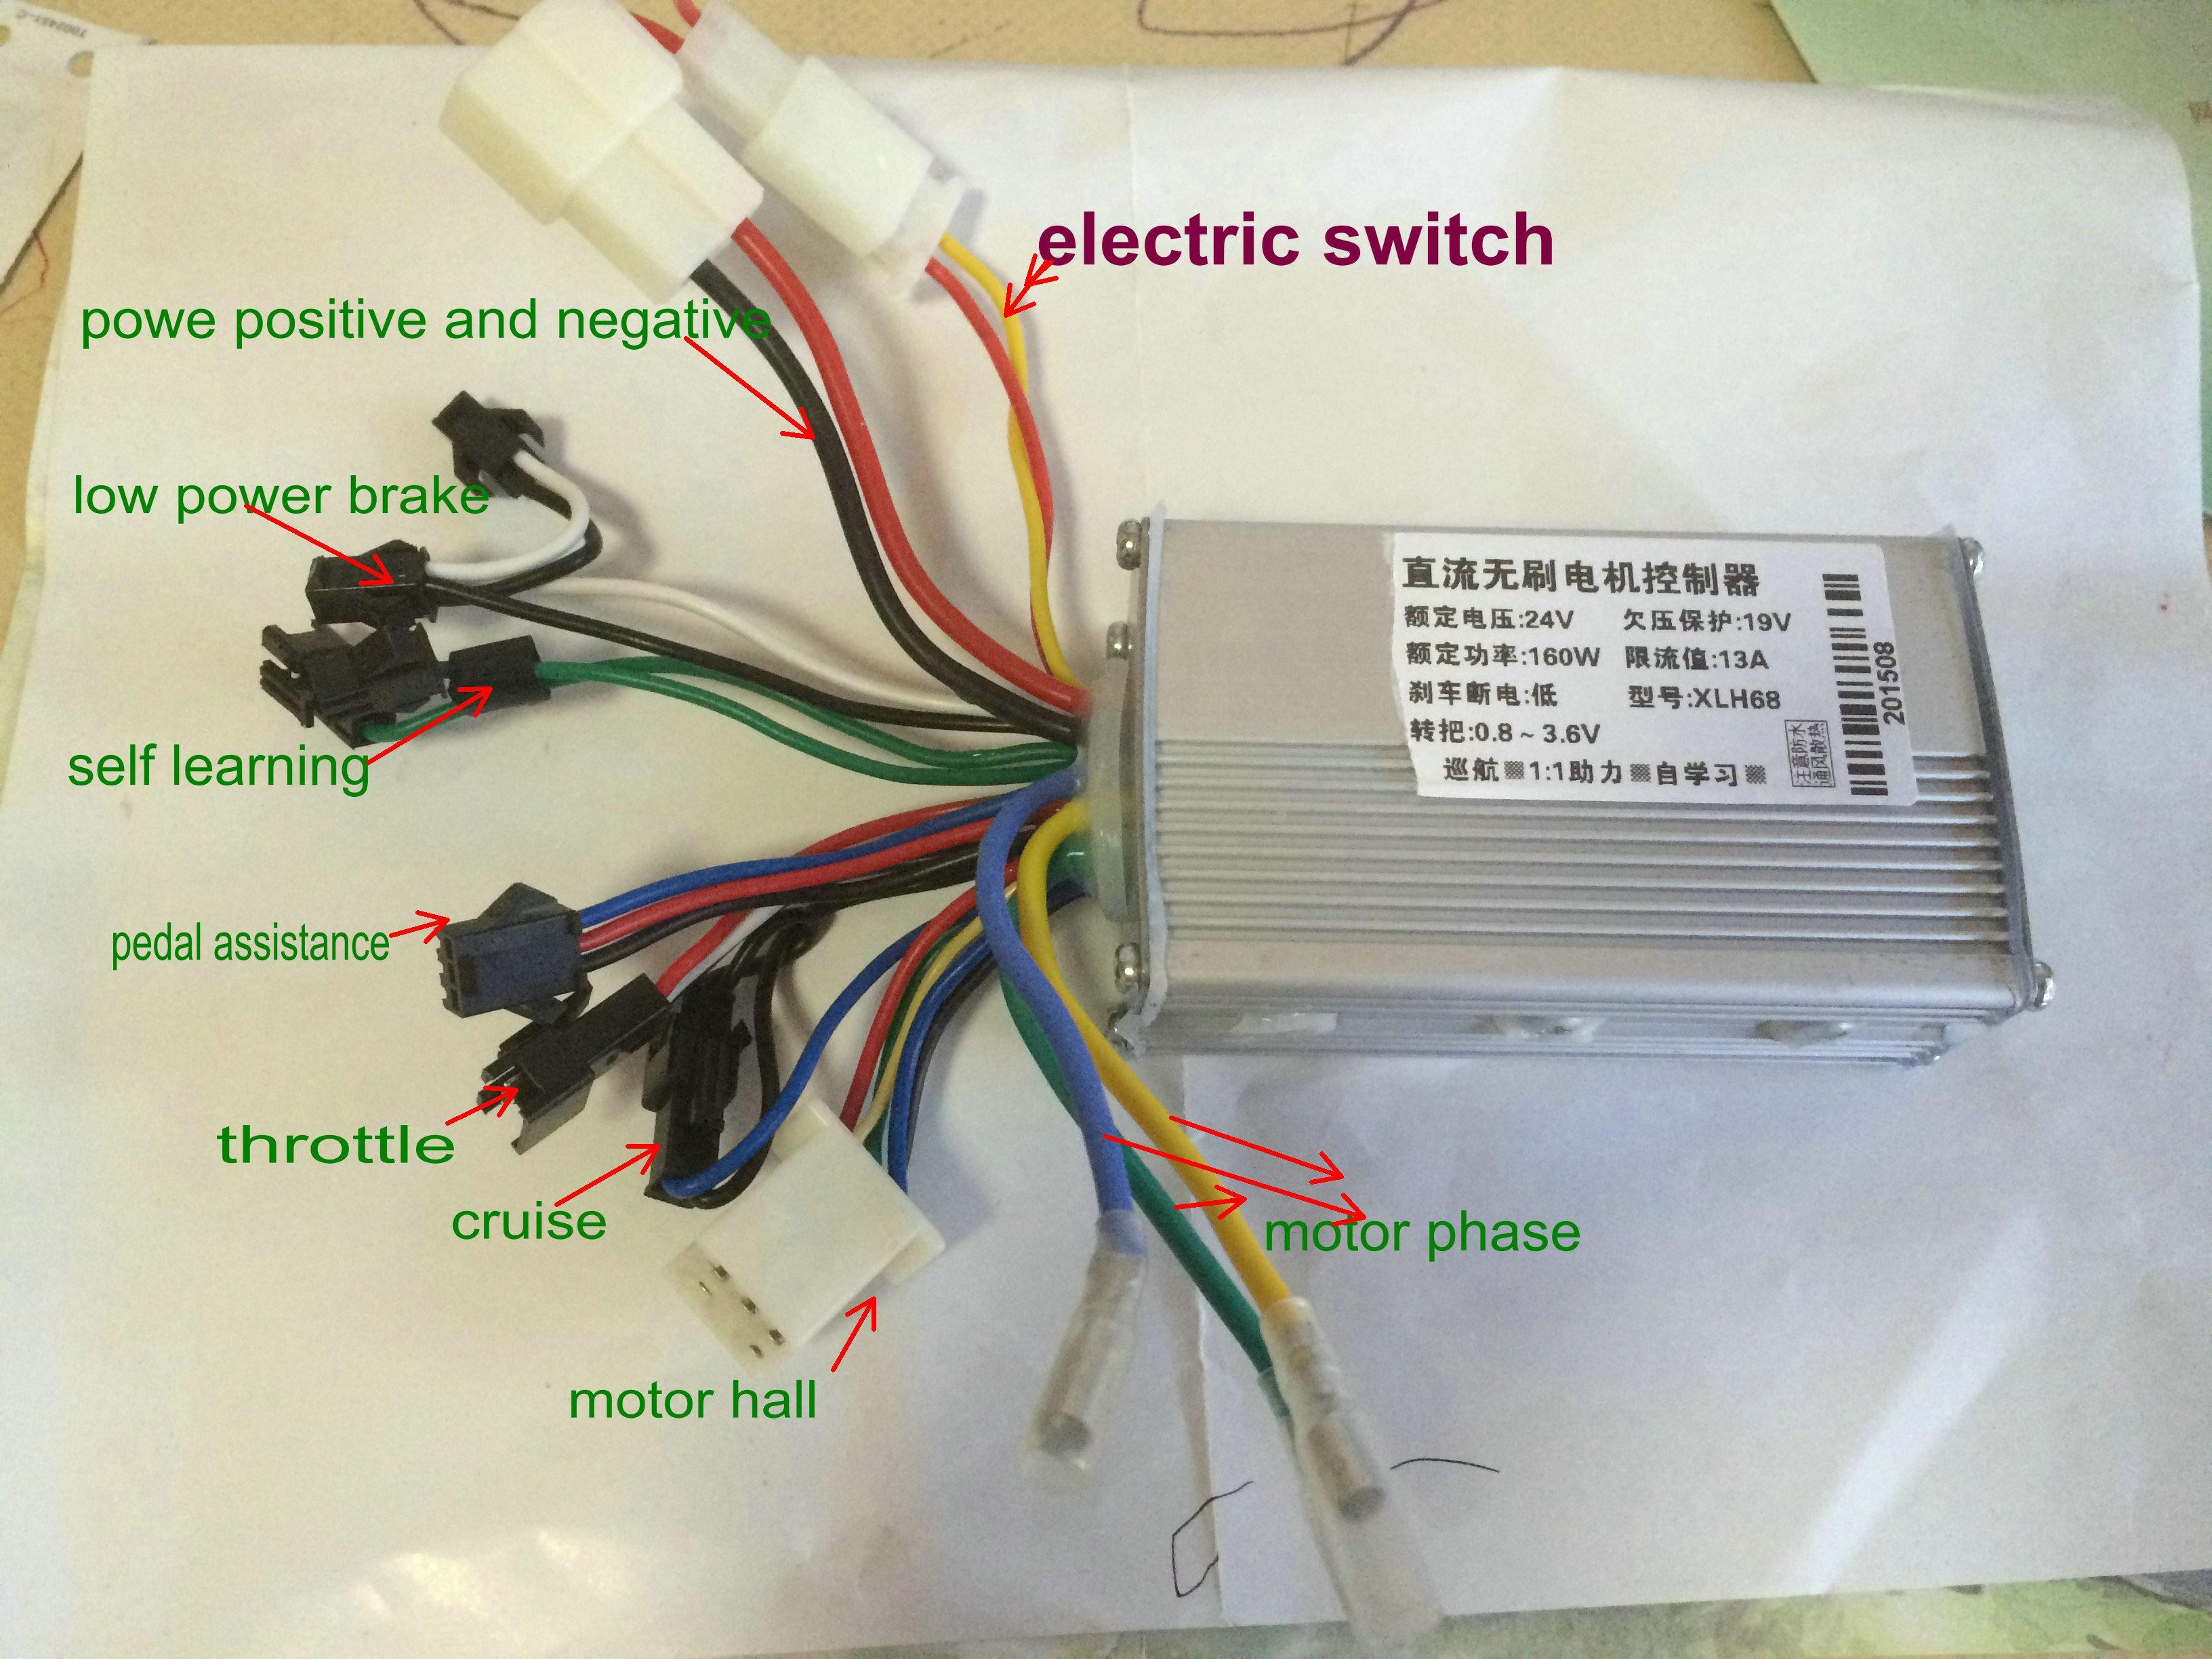 2019 24v36v48v 250w350w BLDC Motor Speed Controller 6 Mosfet Dual Mode Electric Bike Mtb Tricycle Scooter Moped Conversion Part From Phoebeqxvehiclesport